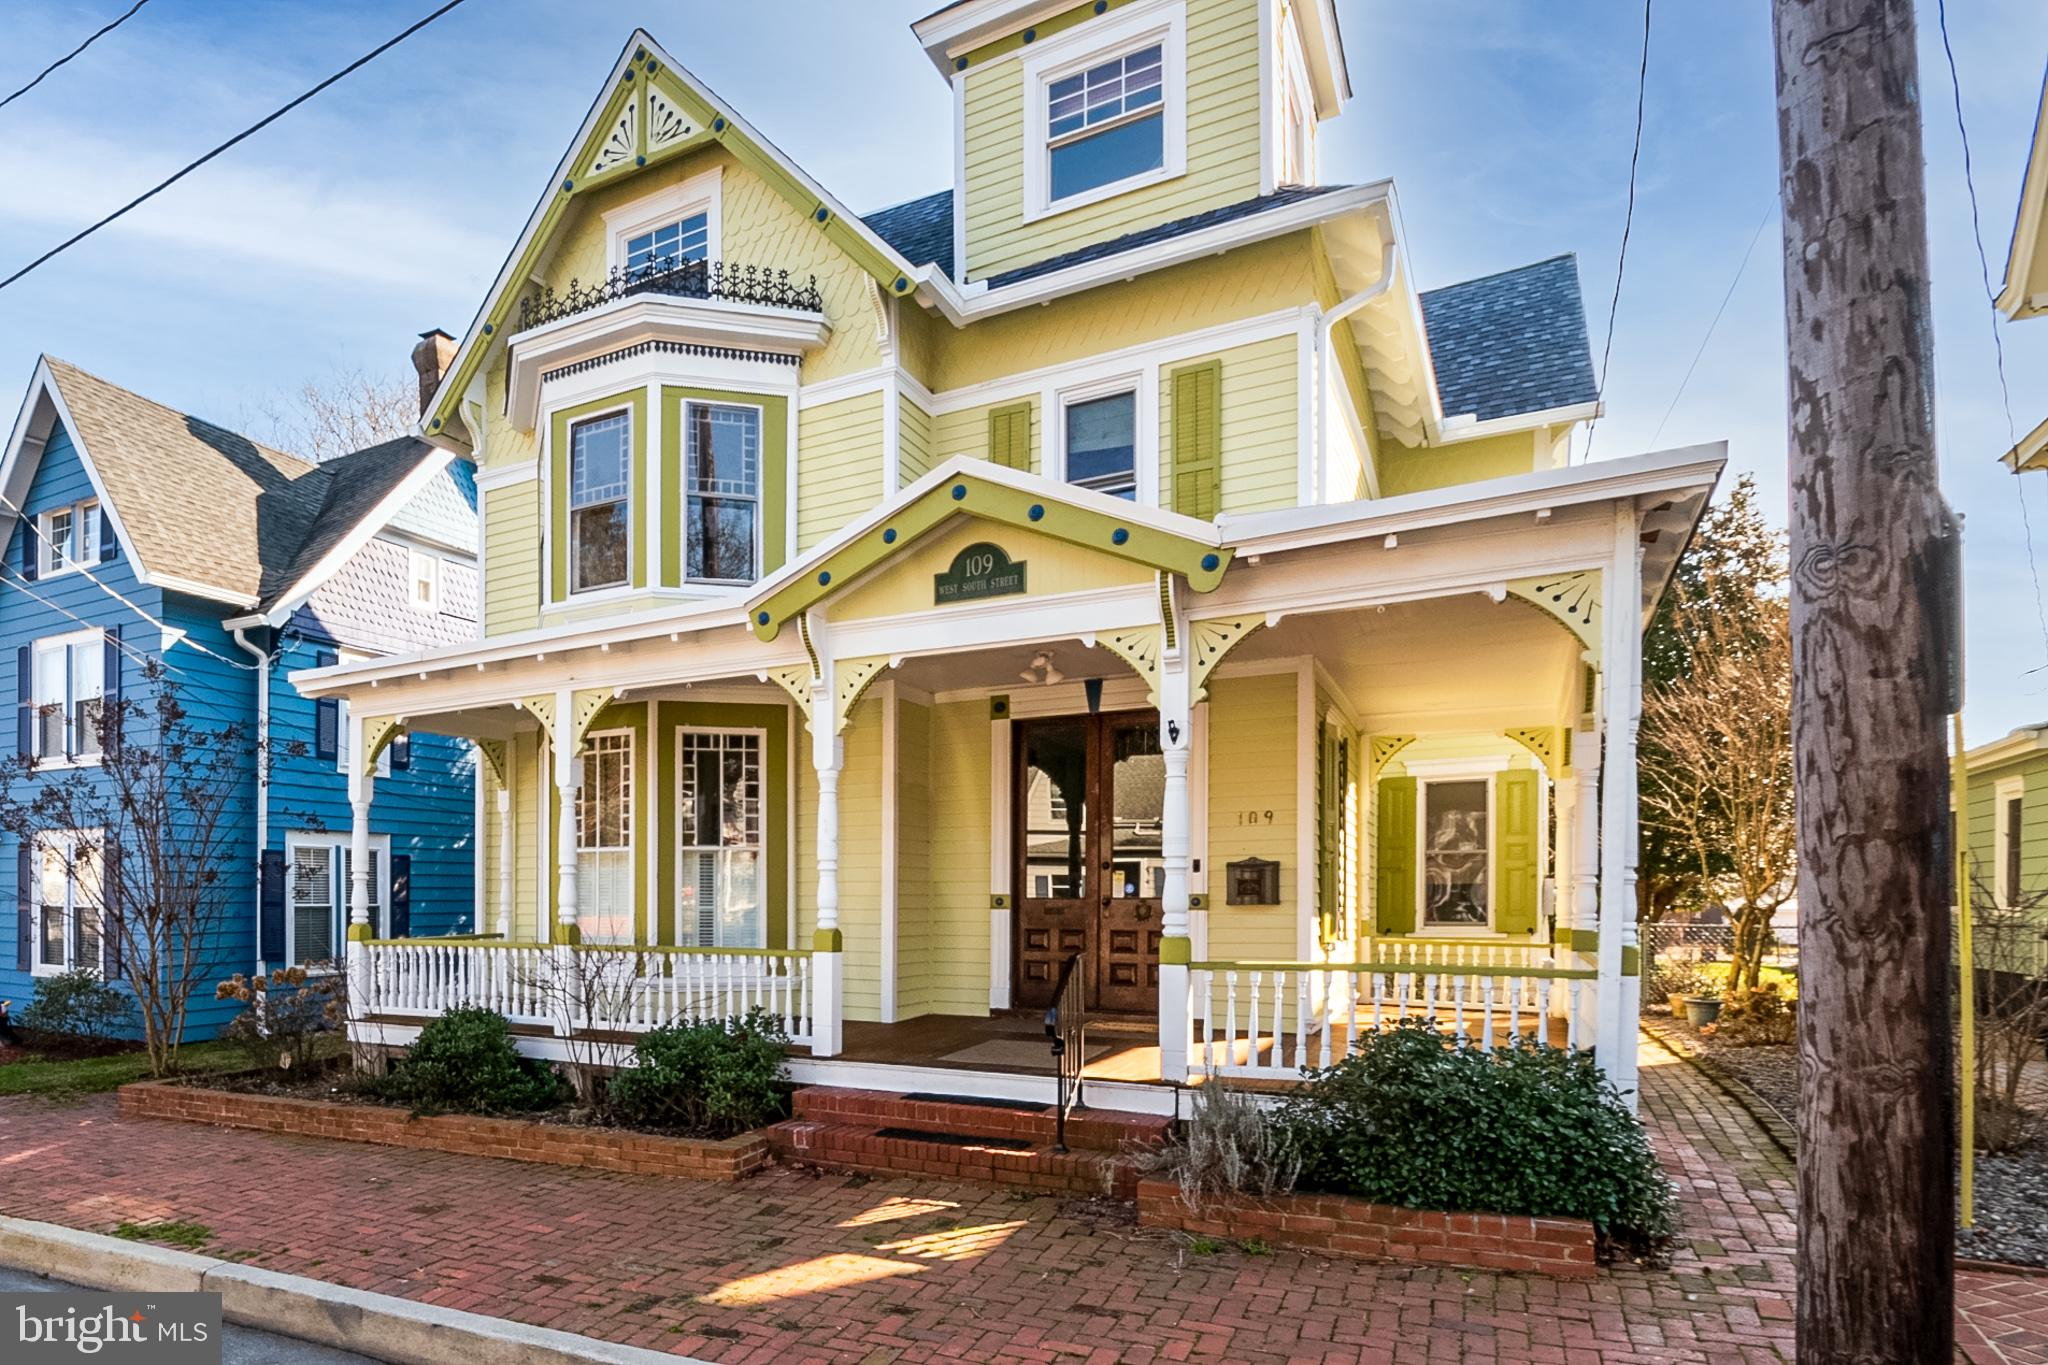 "Due to relocation, this beautiful and lovingly updated National Historic Register Victorian home located on the prettiest street in the historic District of Smyrna is now available. Always a family home for the past 135 years, the Samuel Reynold House has so much offer and appreciate. All the updates were done tastefully to respect the age and character of this charming lady.   From the moment you cross the brick sidewalk and step onto the Teak wrap around porch and enter thru the original grand large double doors, into the open and light filed foyer accentuated by a beautiful staircase(one of two in the house), the light filtering through the diamond shaped stained glass window on the staircase, you realize the details abound in this home.   Through the pocket doors on the left you enter the family room that is warm and inviting with a large stained glass bay window and two additional large windows. Walk through the next set of pocket doors and you enter the parlor, complete with a doll house replica.    Another set of pocket door leads into a huge dining room with a stunning chandelier.  From the dining room you enter your 22 x 13 eat in chef's kitchen.  The cabinets are custom Kraft Maid, there are 2 pantries, a recessed area for your speed queen washer/dryer and plenty of cabinet and drawer space.  The counters are honed granite and the island is topped with a 2"" vintage butcher block.  The range is by DCS and the appliances are by Bosch.  There are 4 large windows and French doors lead out to a backyard perfect for entertaining and fenced for your pets.  The yard boasts a huge new brick patio, a firepit, lush landscaping and mature trees including a mature deciduous pink magnolia as well as perennials, hosta, hydrangeas and seasonal bulbs all in brick lined planting beds. there is also a hook up for your gas outdoor kitchen.  CHECK OUT THE VIDEO TOUR!! The first floor also boasts a full bathroom.  The second floor master bedroom has the same stained glass bay windows as found in the first floor, 2 large side windows and a large walk-in closet.  There are 3 other bedrooms and a full new bath on this level.  The 3rd floor has a large bedroom, an artist room, a library and home office area, a full bath and of course the stunning tower area.  Any teenager would claim the 3rd floor as their own.  Between 2018-2020 a new roof and gutters, central air and split system ac, and all interior and exterior painting was professionally done.   The home, while Victorian in design, has a very open flowing floor plan and works beautifully for the busy modern family. You won't find another Victorian that has been so well kept with as many quality updates.  We hope you enjoy many years in this special home we loved. Call for your private viewing.  SHOWINGS BEGIN JANUARY 16TH WITH THE SCHEDULED OPEN HOUSE!!"